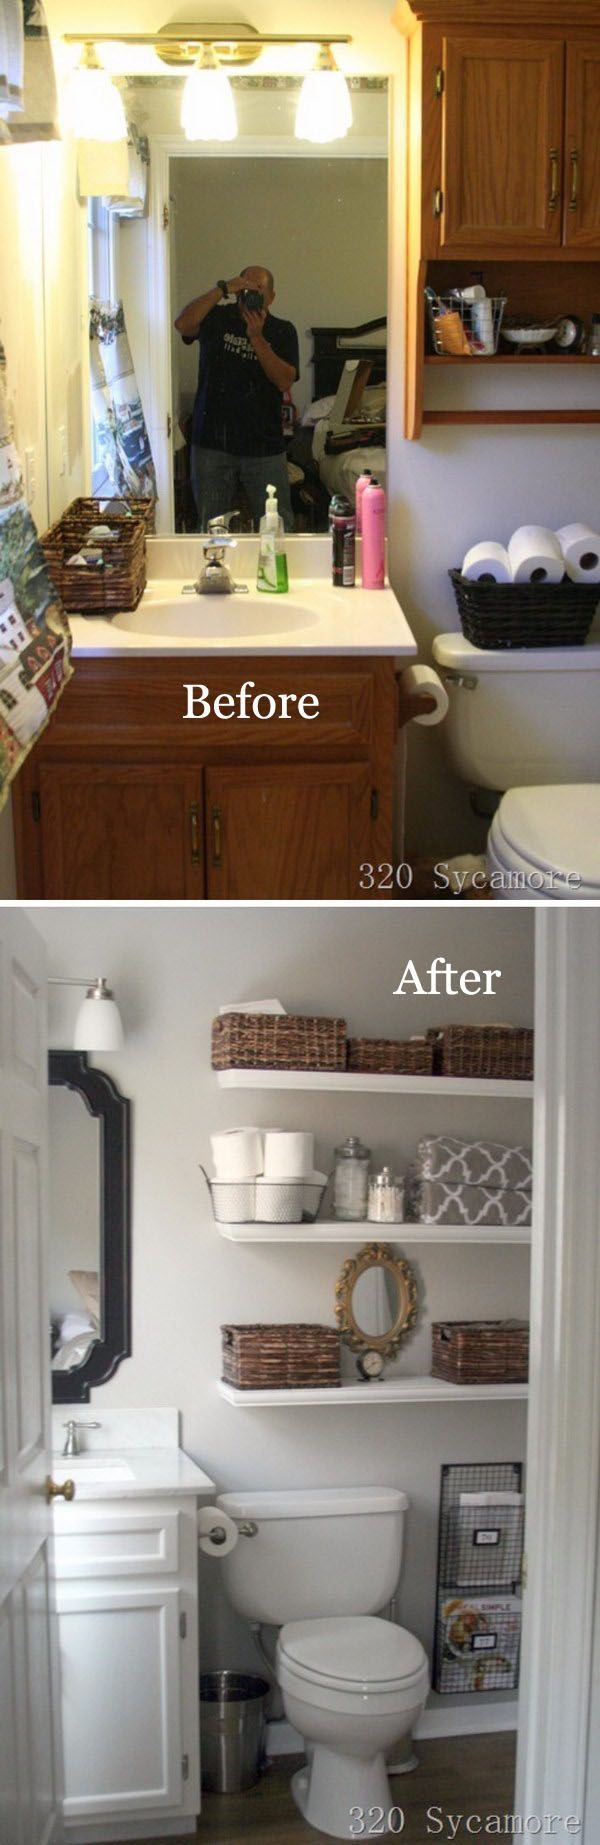 best 20 small bathrooms ideas on pinterest small master bathroom ideas small bathroom and guest bathroom remodel. beautiful ideas. Home Design Ideas